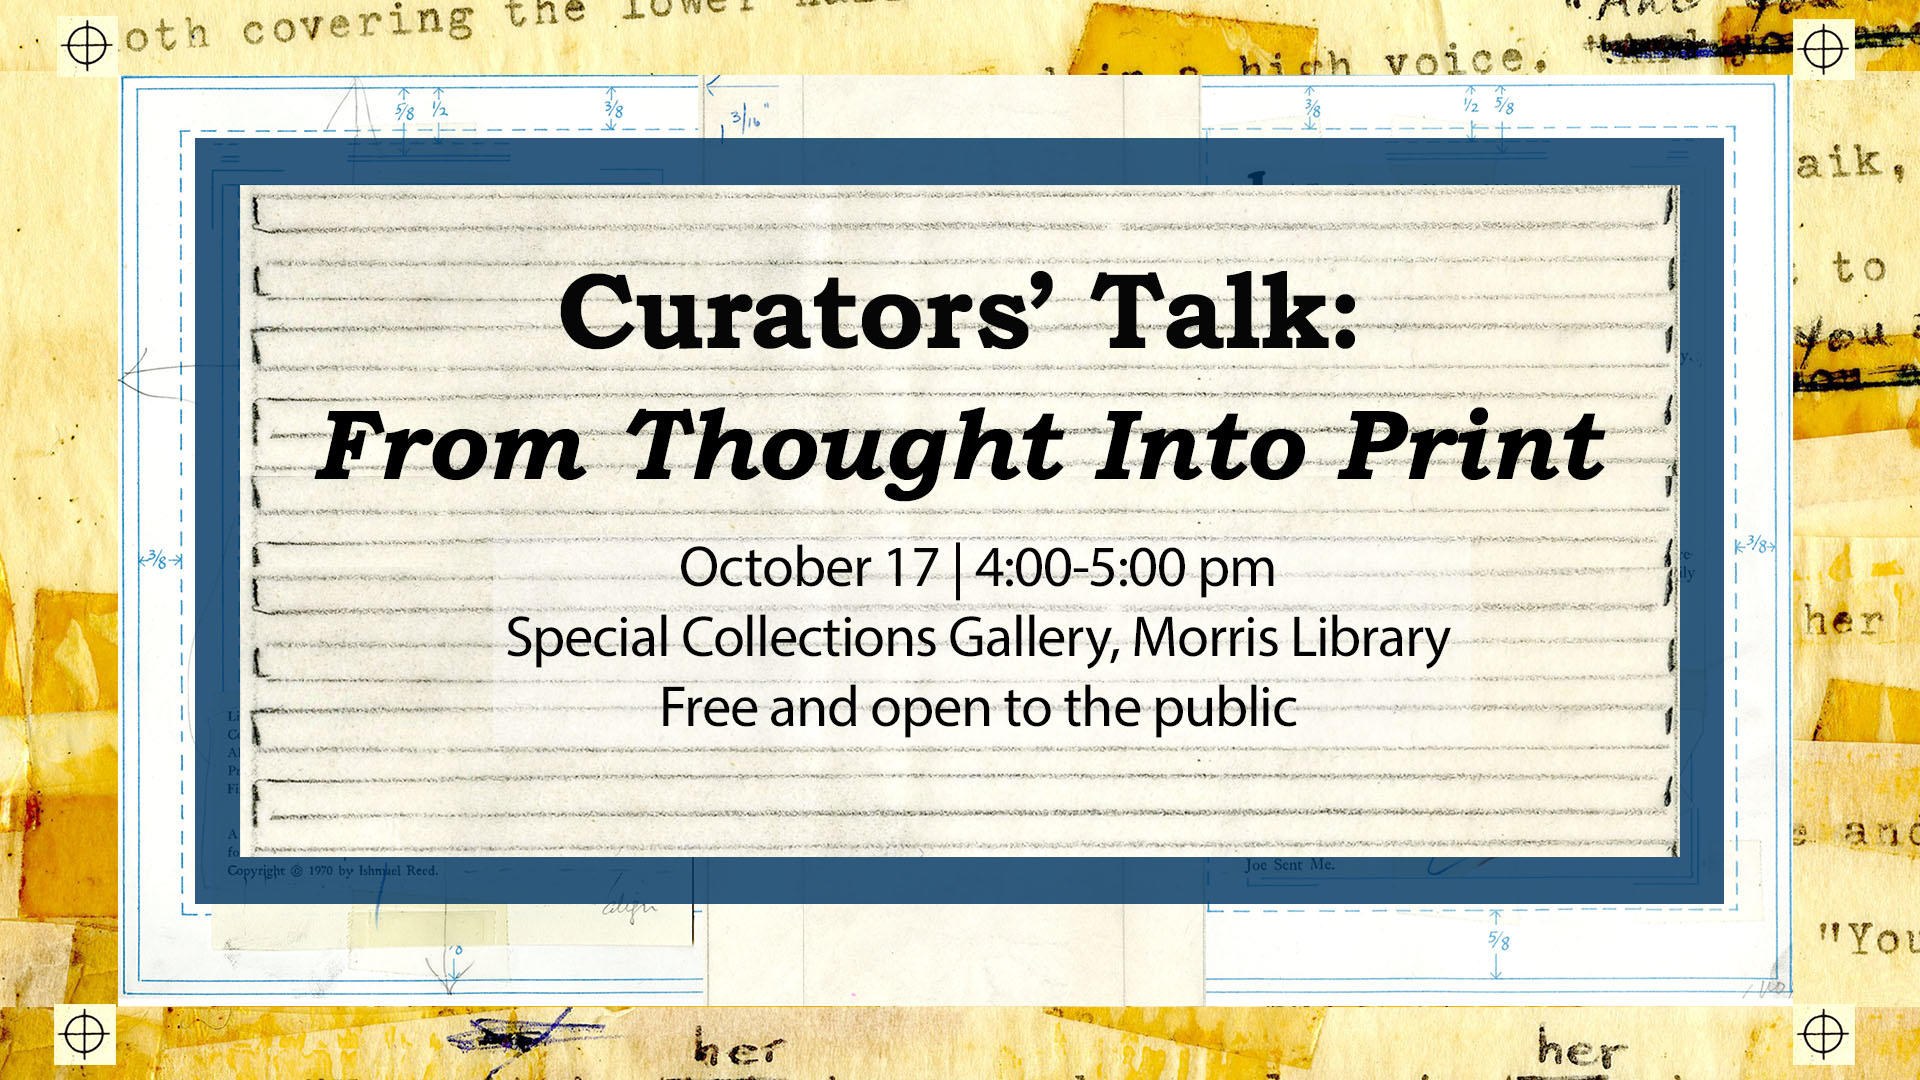 Curators' Talk: From Thought Into Print, October 17, 4-5 p.m., Special Collections Gallery, Morris Library. Free and open to the public.